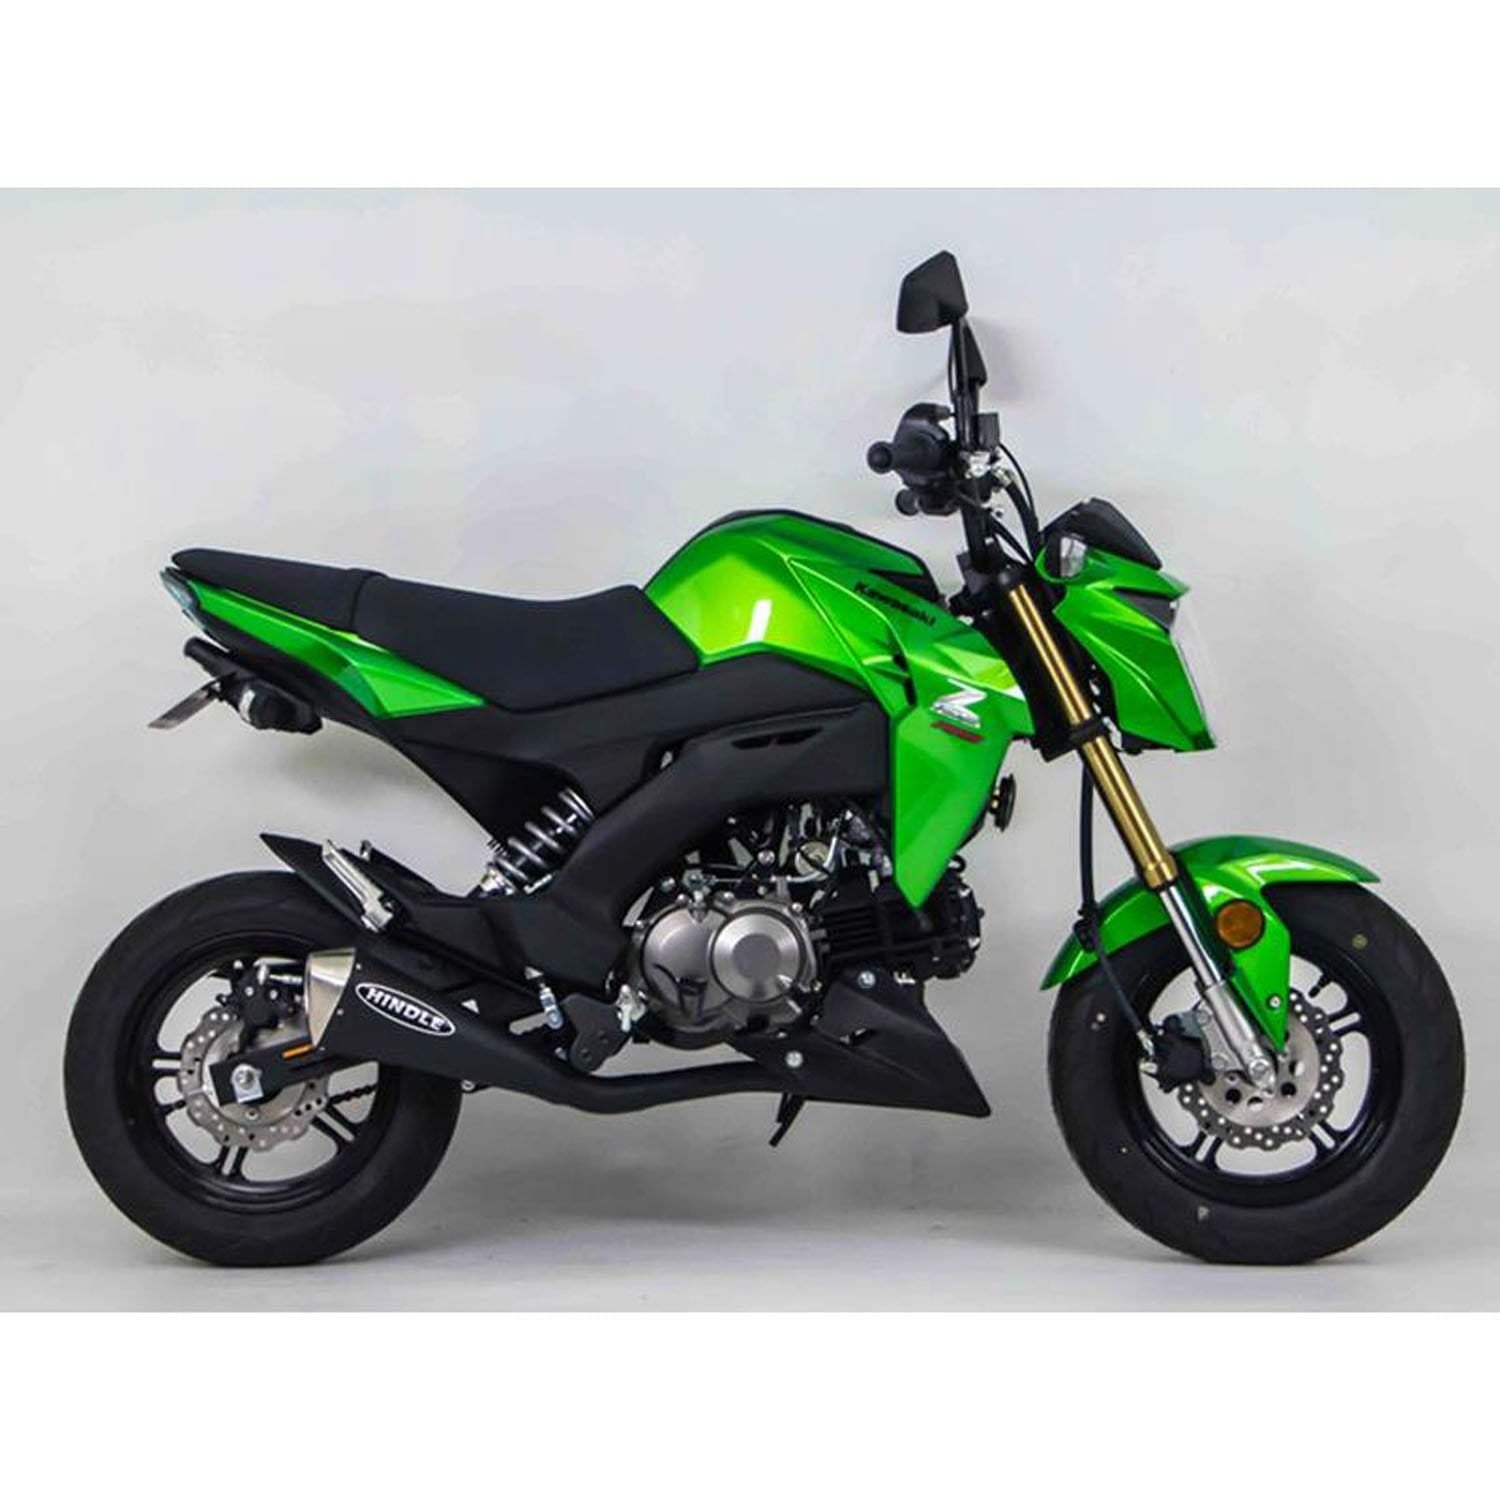 Hindle Evo Megaphone Full System Kawasaki Z125 2017-20 - Louden Clear Designs